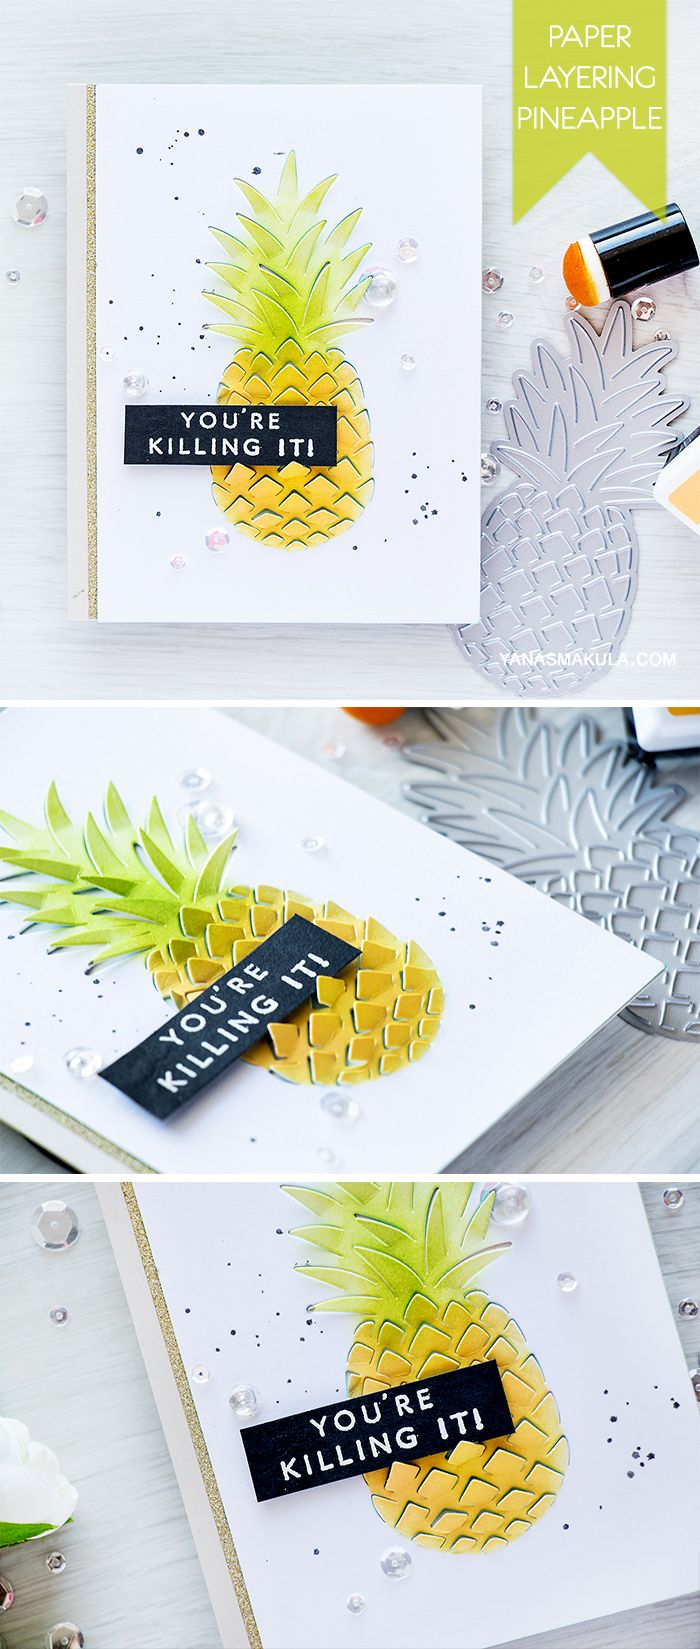 211 Best Pineapple Cards Images On Pinterest Cardmaking Pine